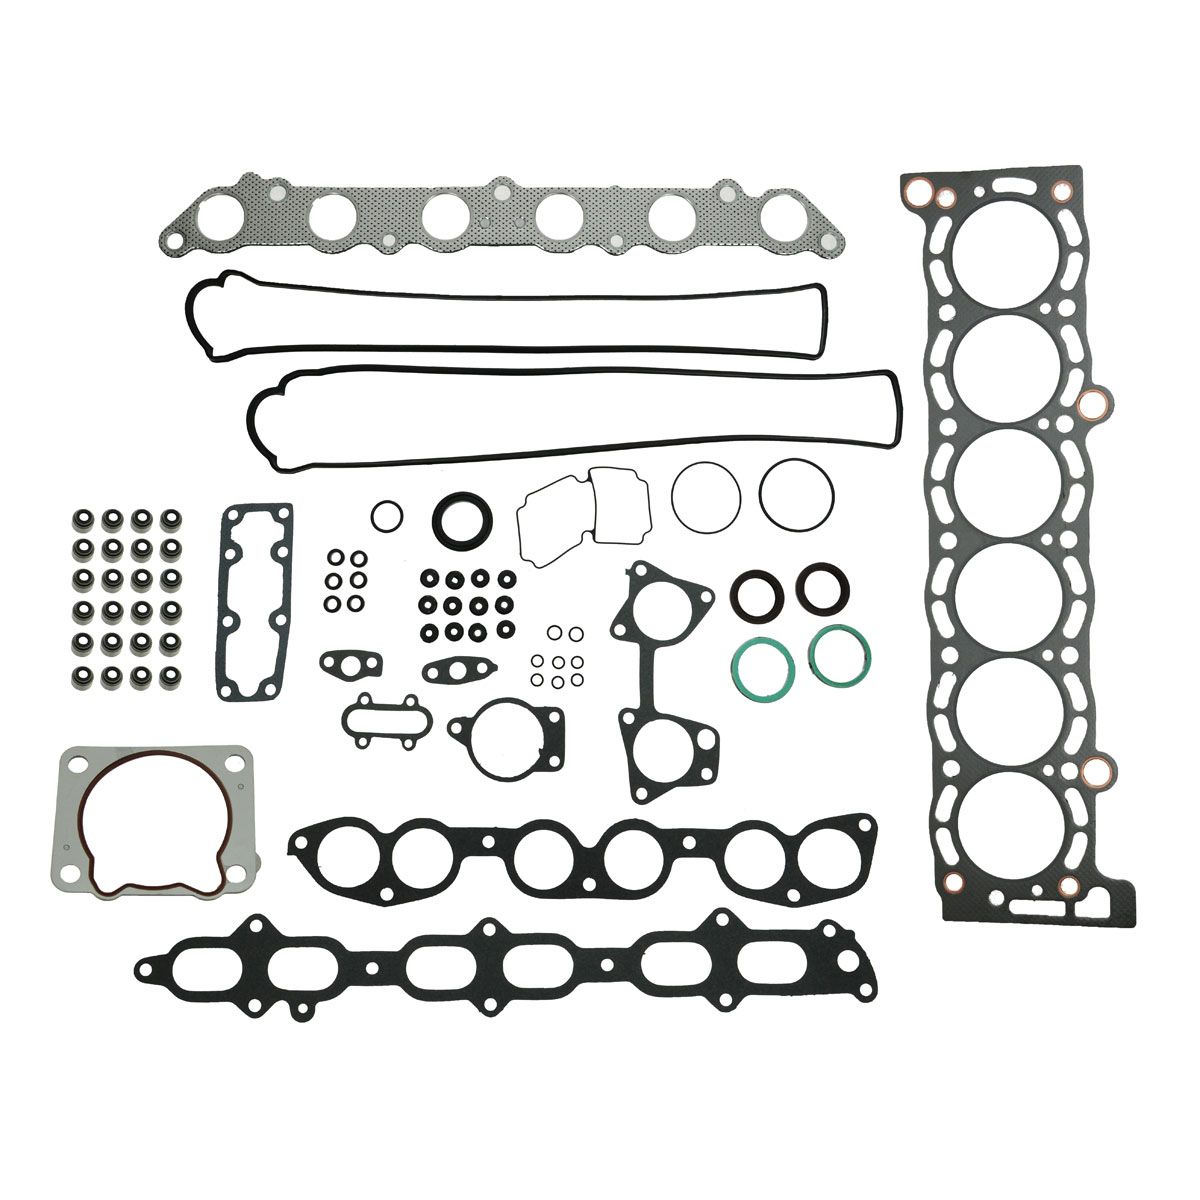 Engine Head Gasket Kit Set New For Toyota Supra Cressida